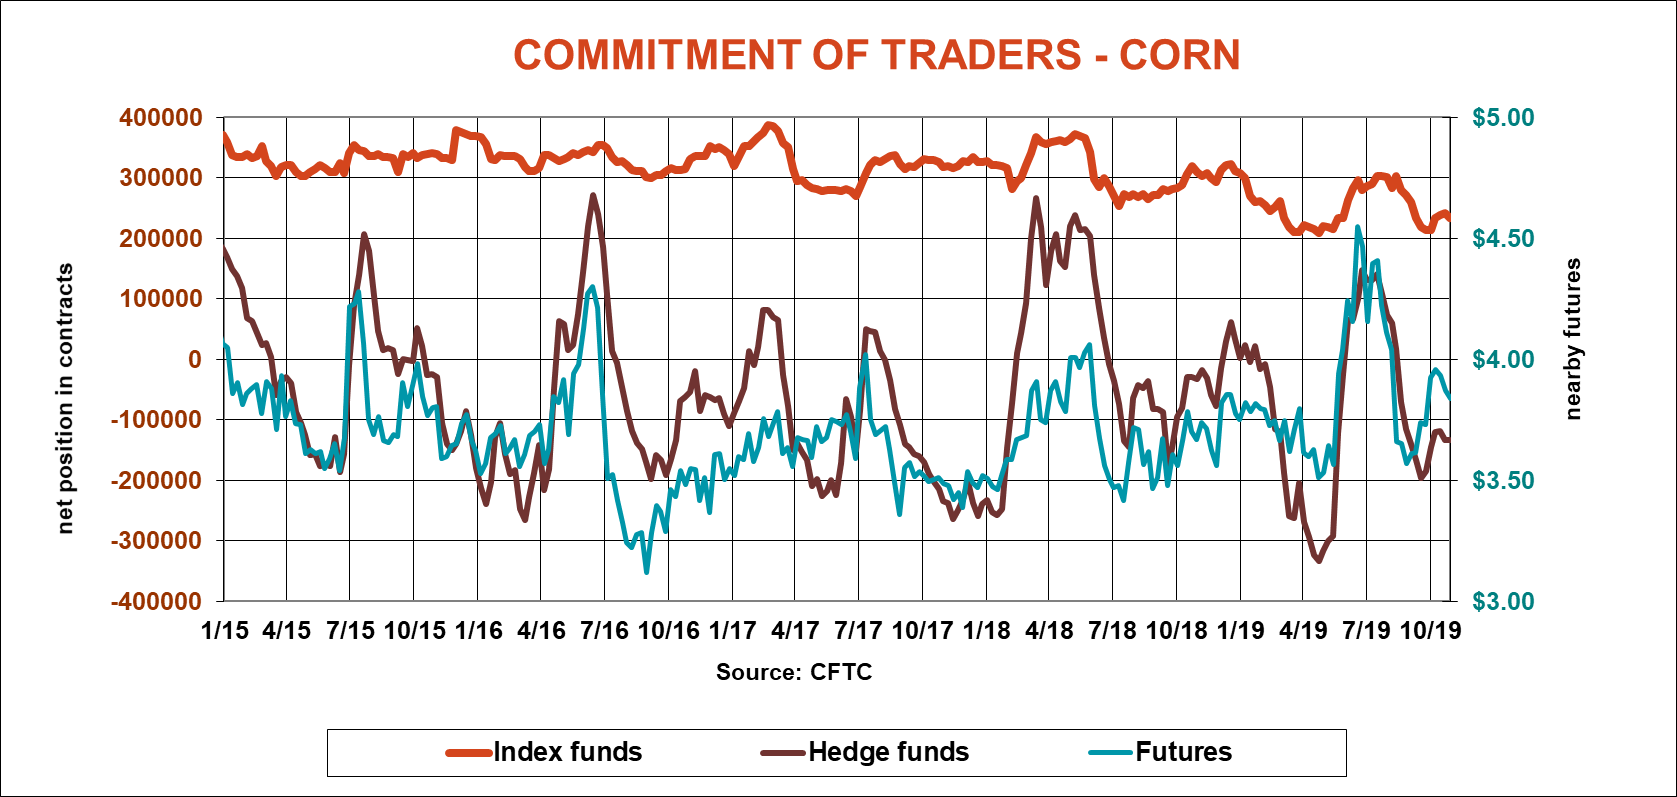 commitment-of-traders-corn-cftc-110119.png